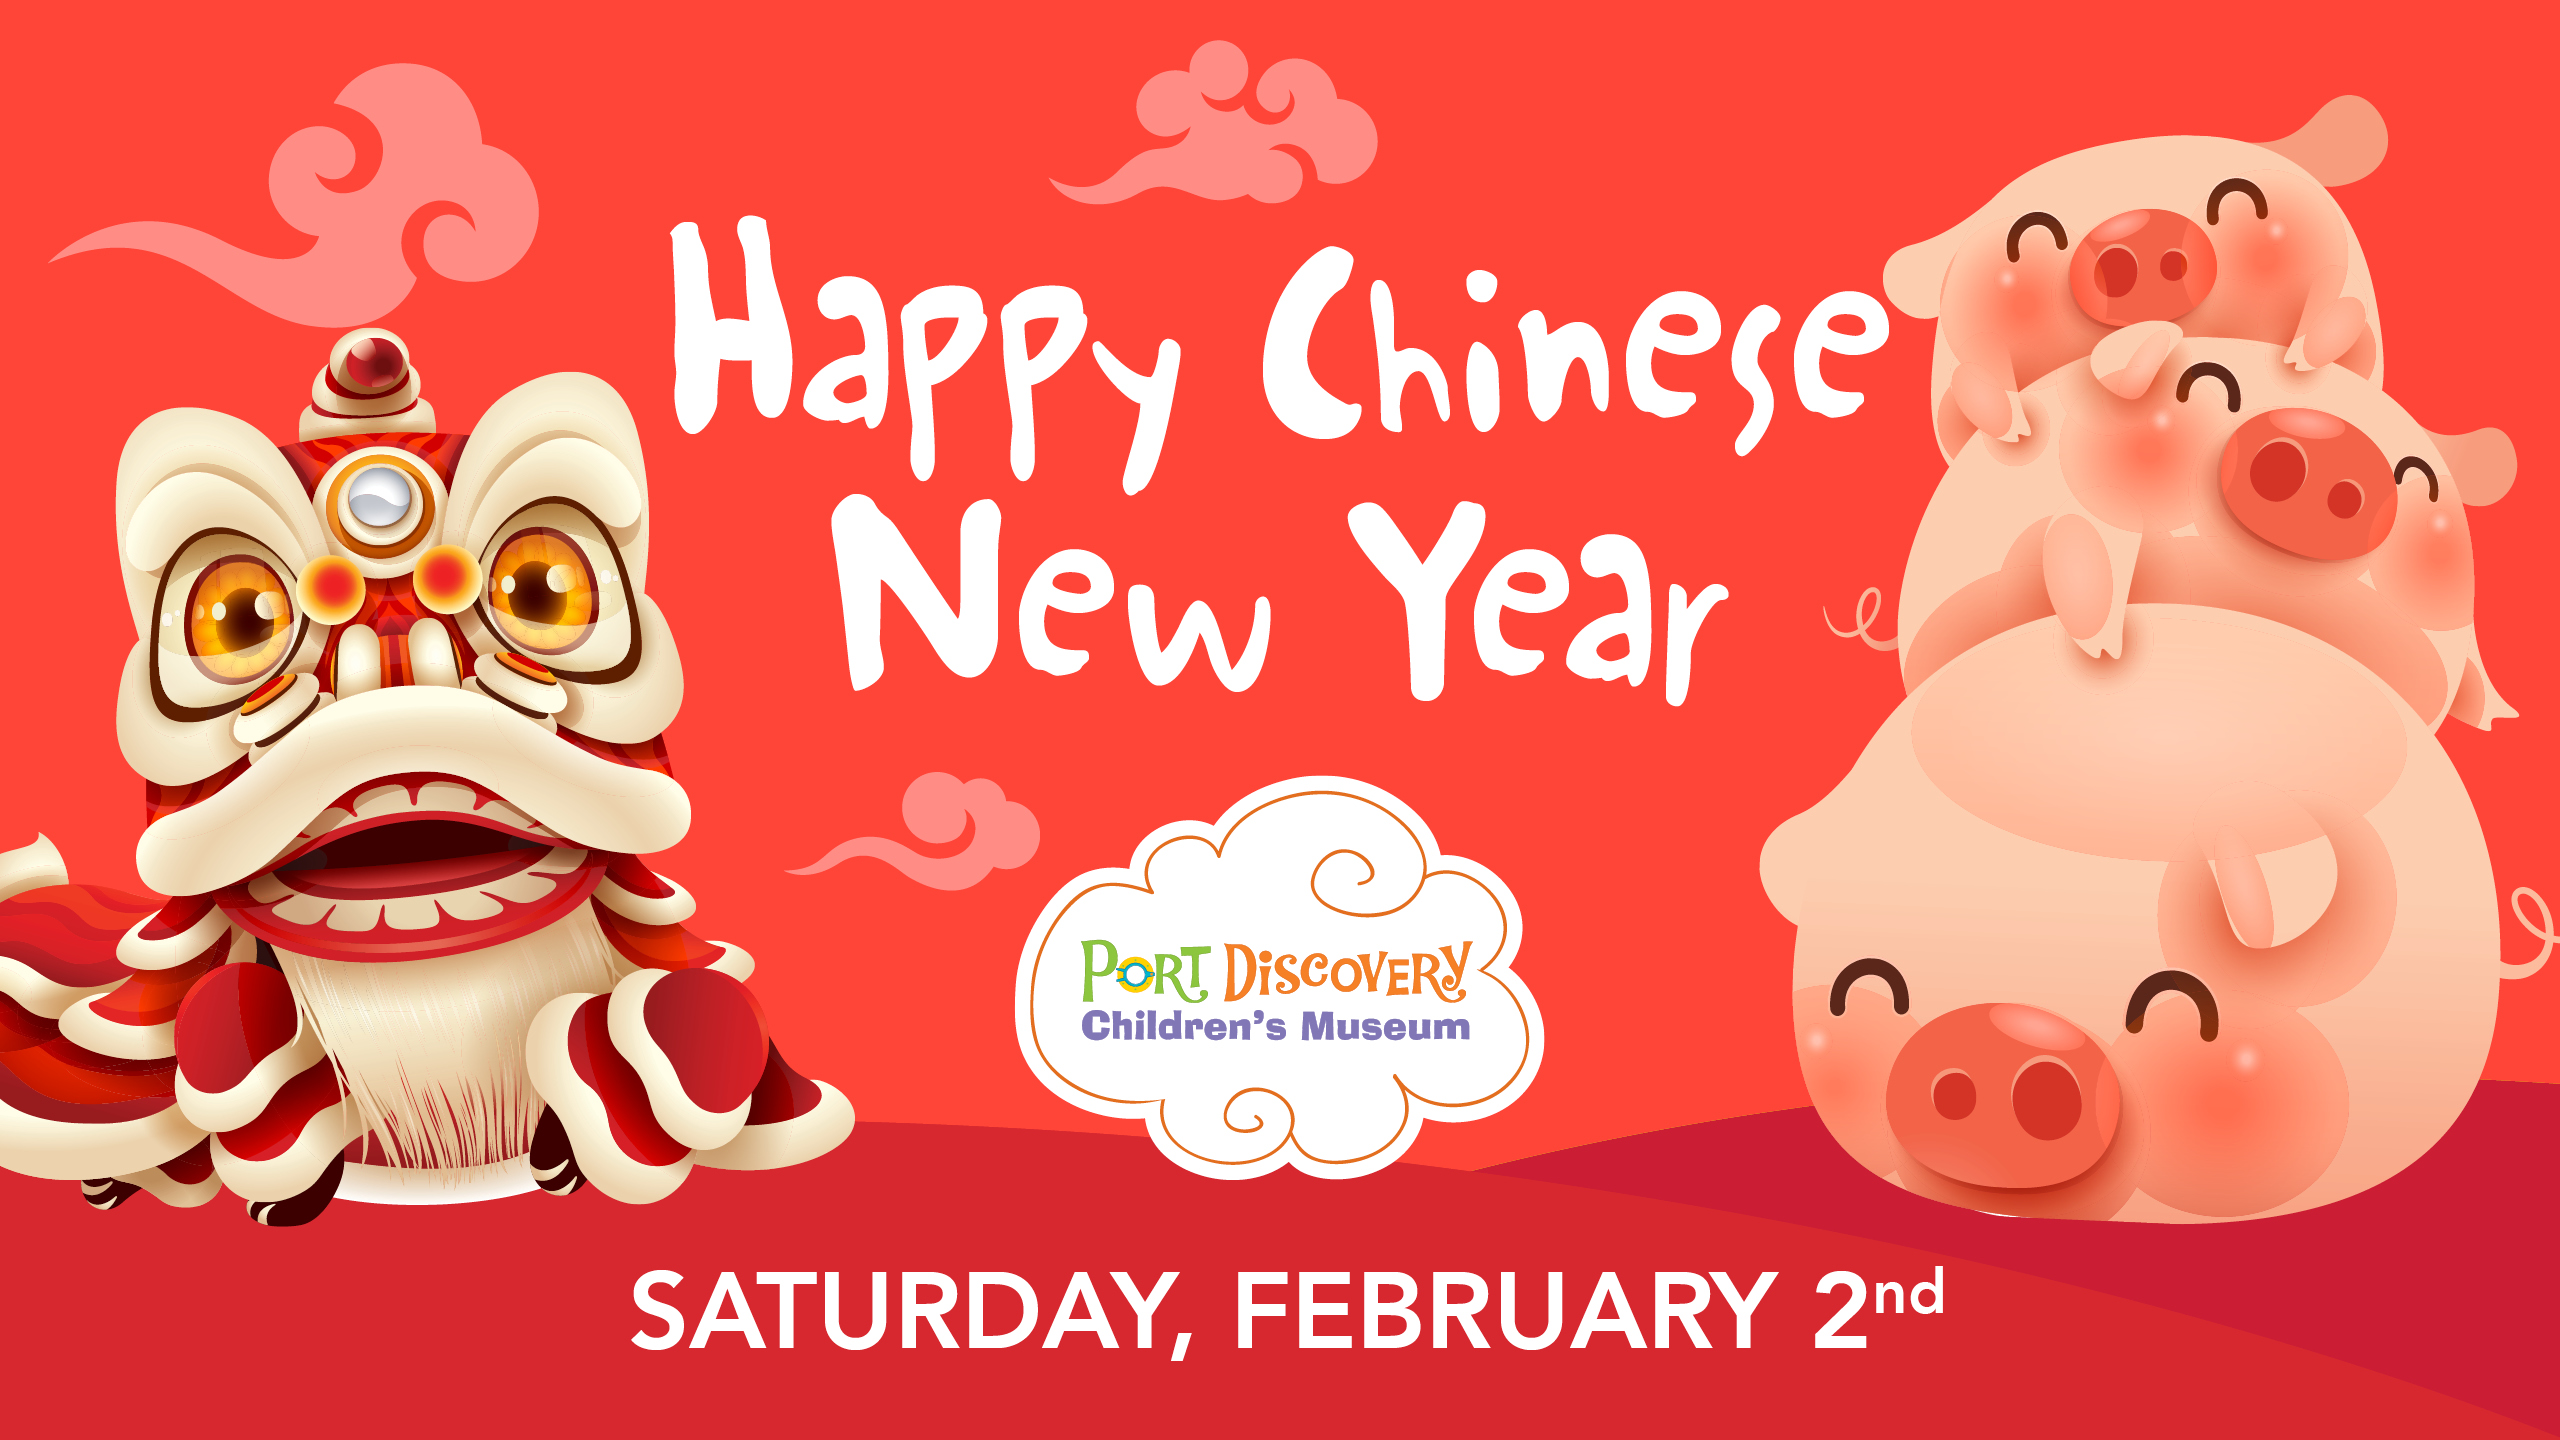 Chinese New Year 2019: Year of the Pig.